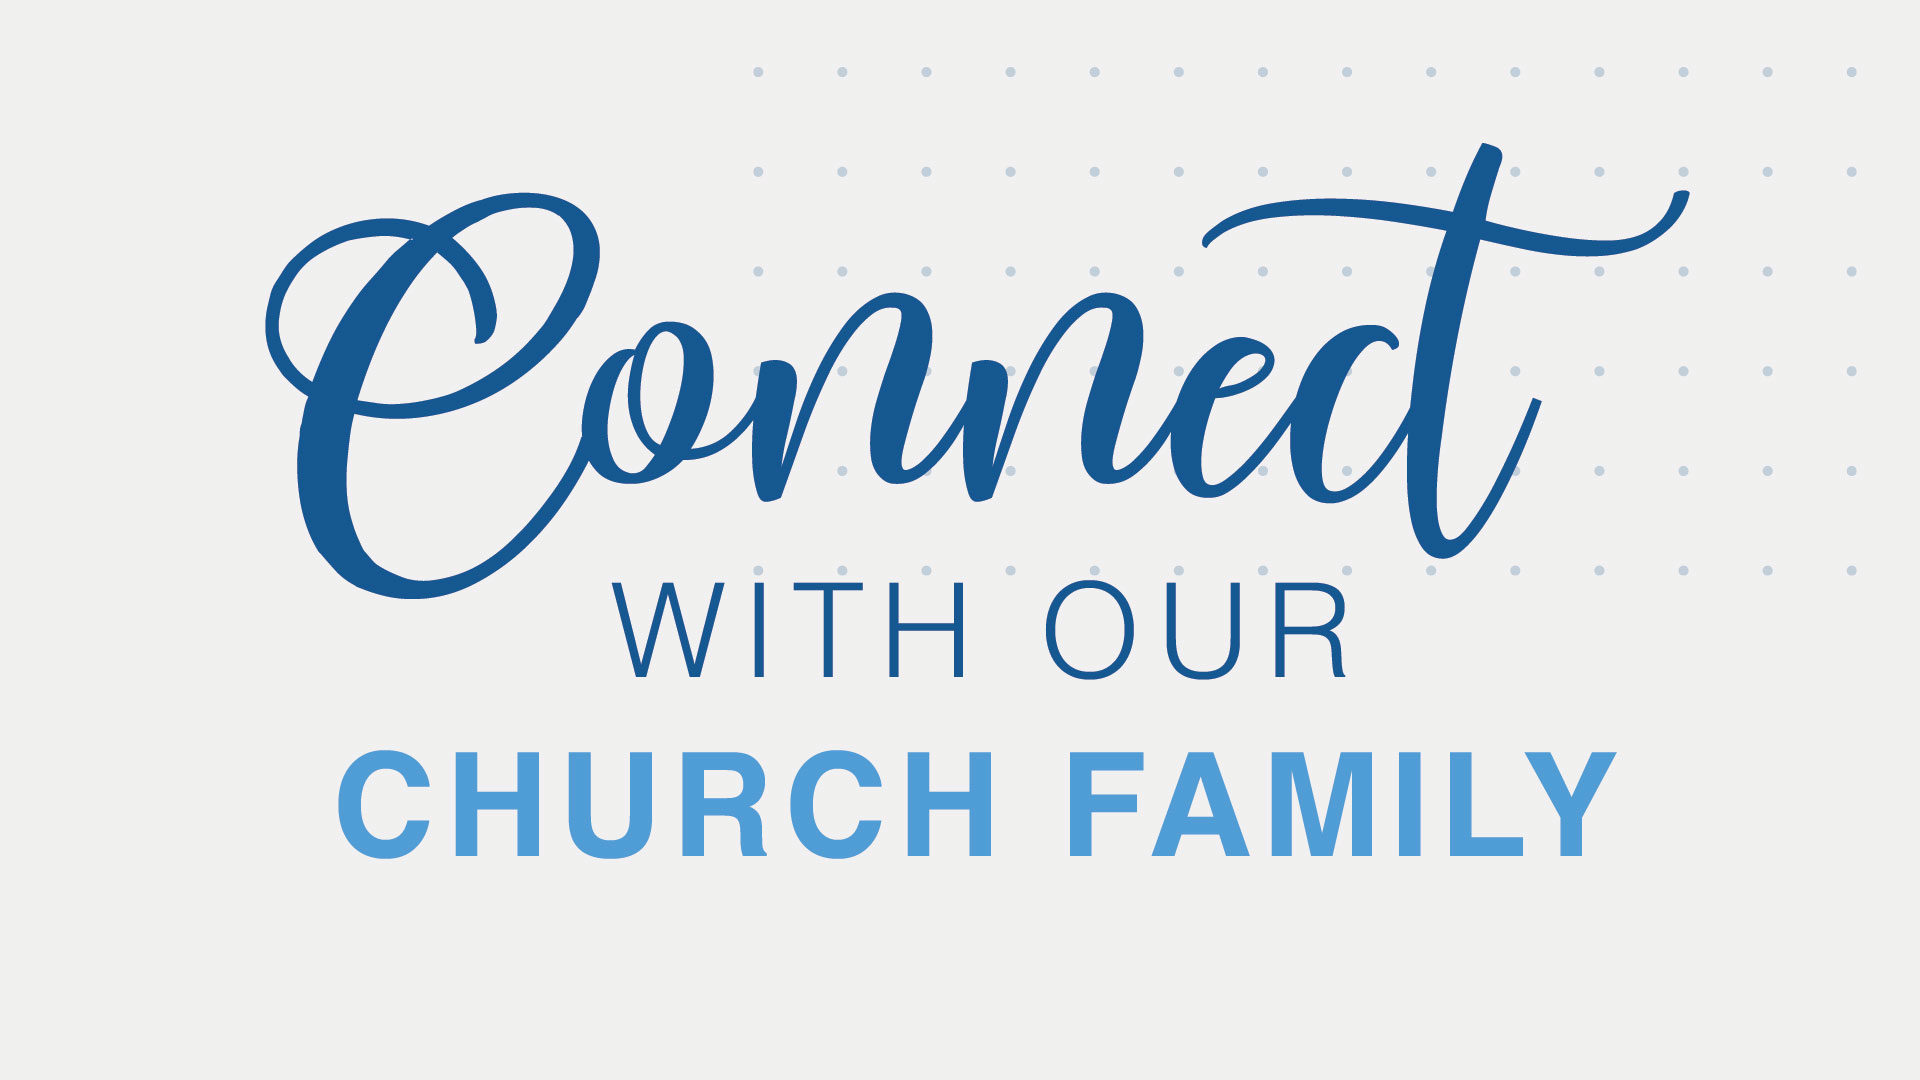 Connect with our Church Family